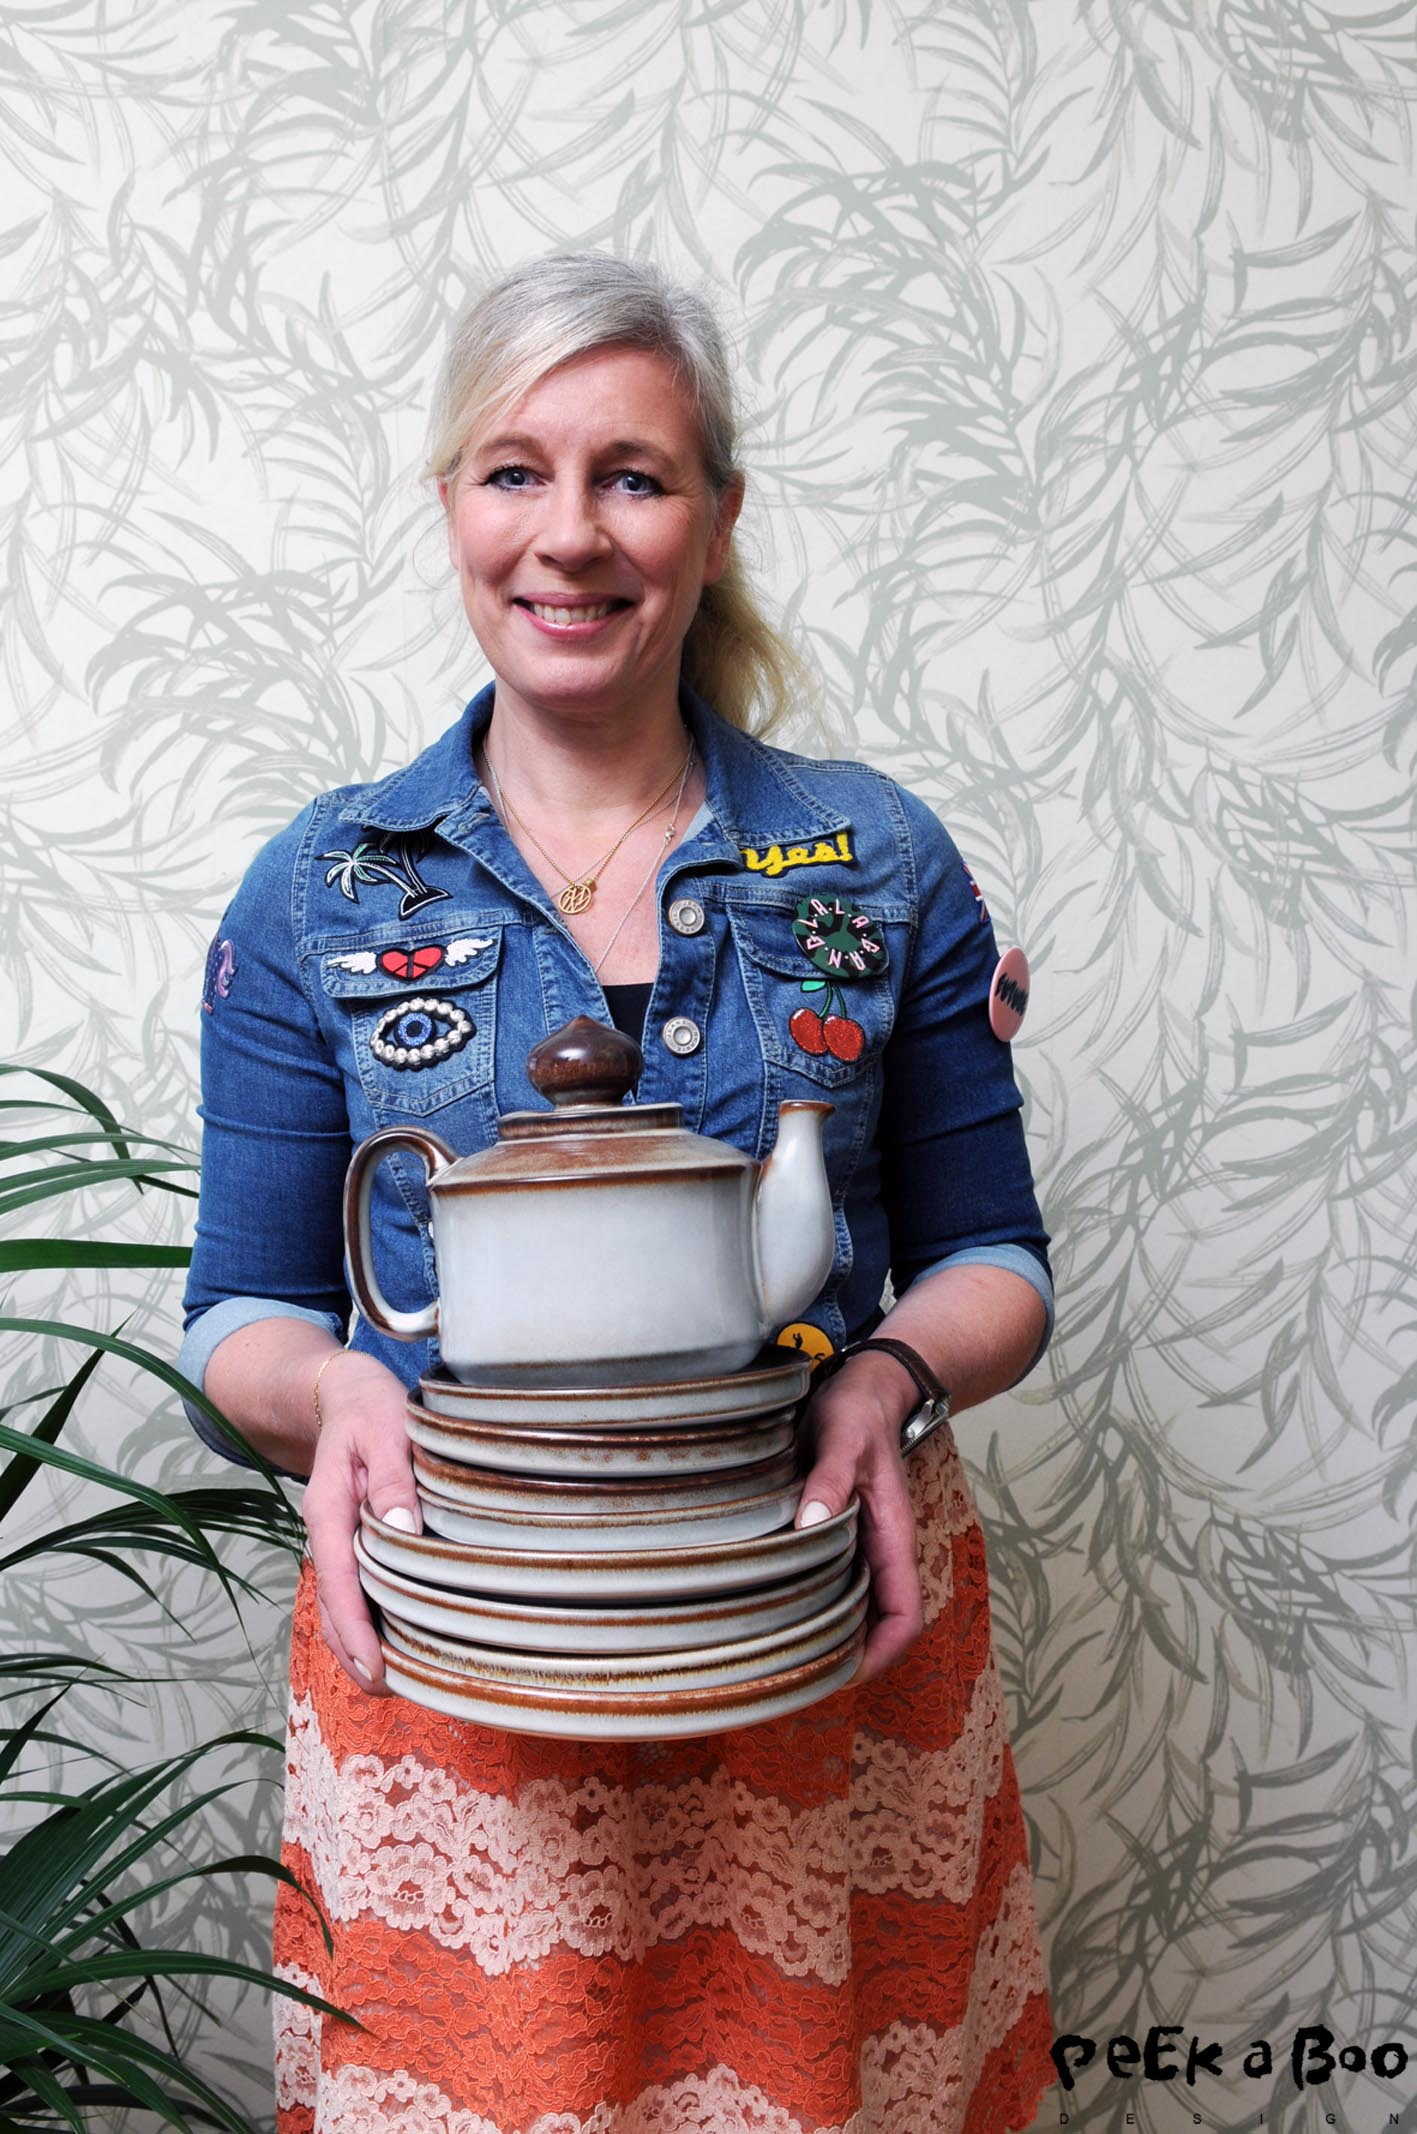 Me with my tableware from the 70'ies. It is from the company Søholm Keramik from the island of Bornholm, Denmark.